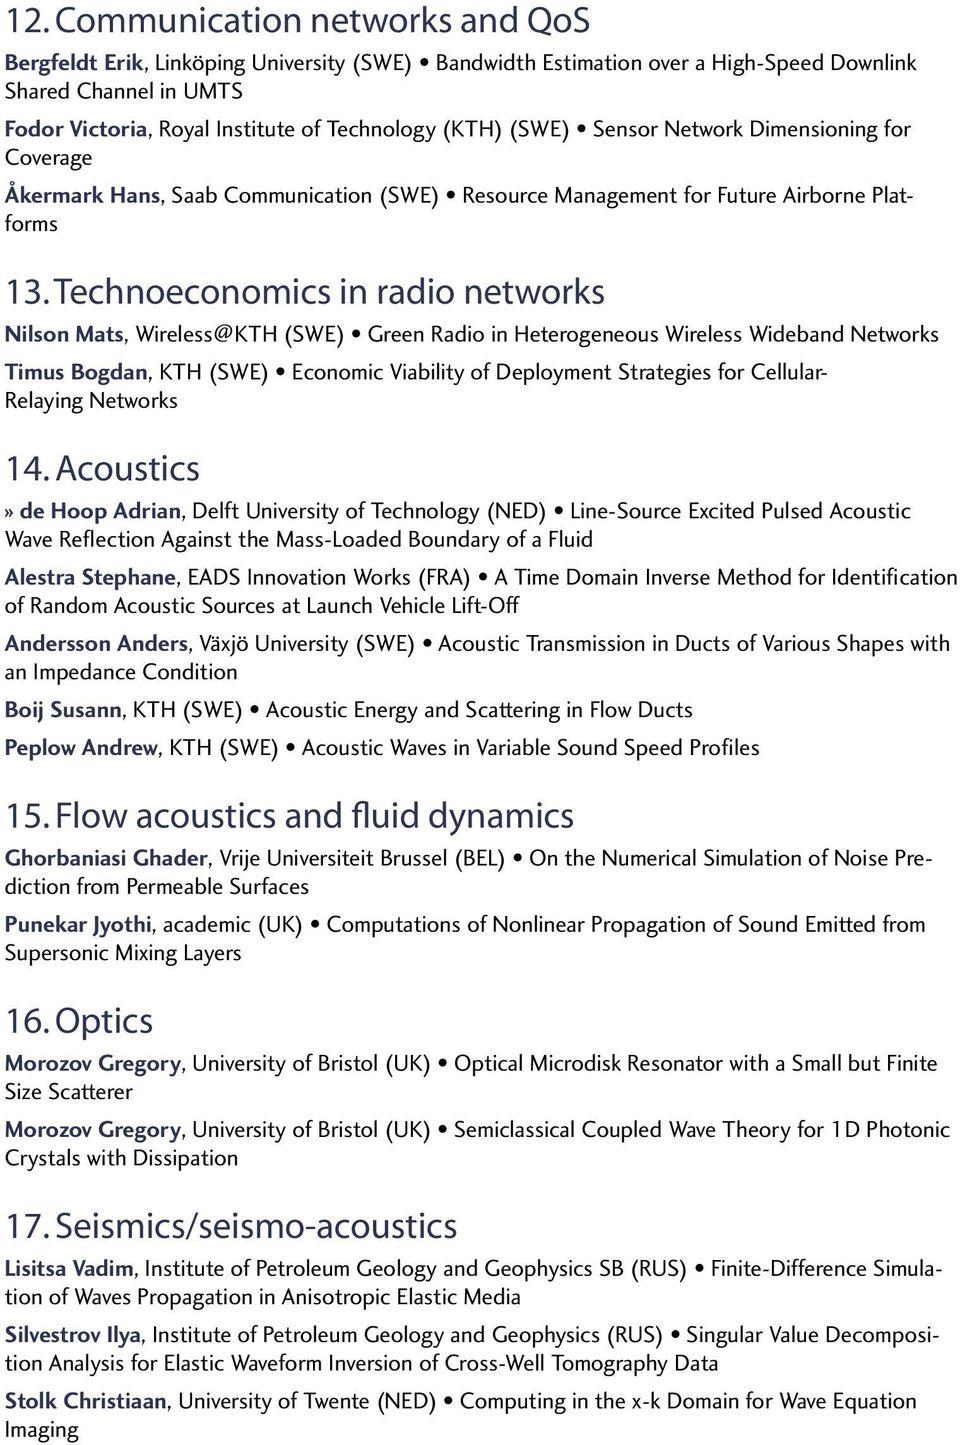 Technoeconomics in radio networks Nilson Mats, Wireless@KTH (SWE) Green Radio in Heterogeneous Wireless Wideband Networks Timus Bogdan, KTH (SWE) Economic Viability of Deployment Strategies for